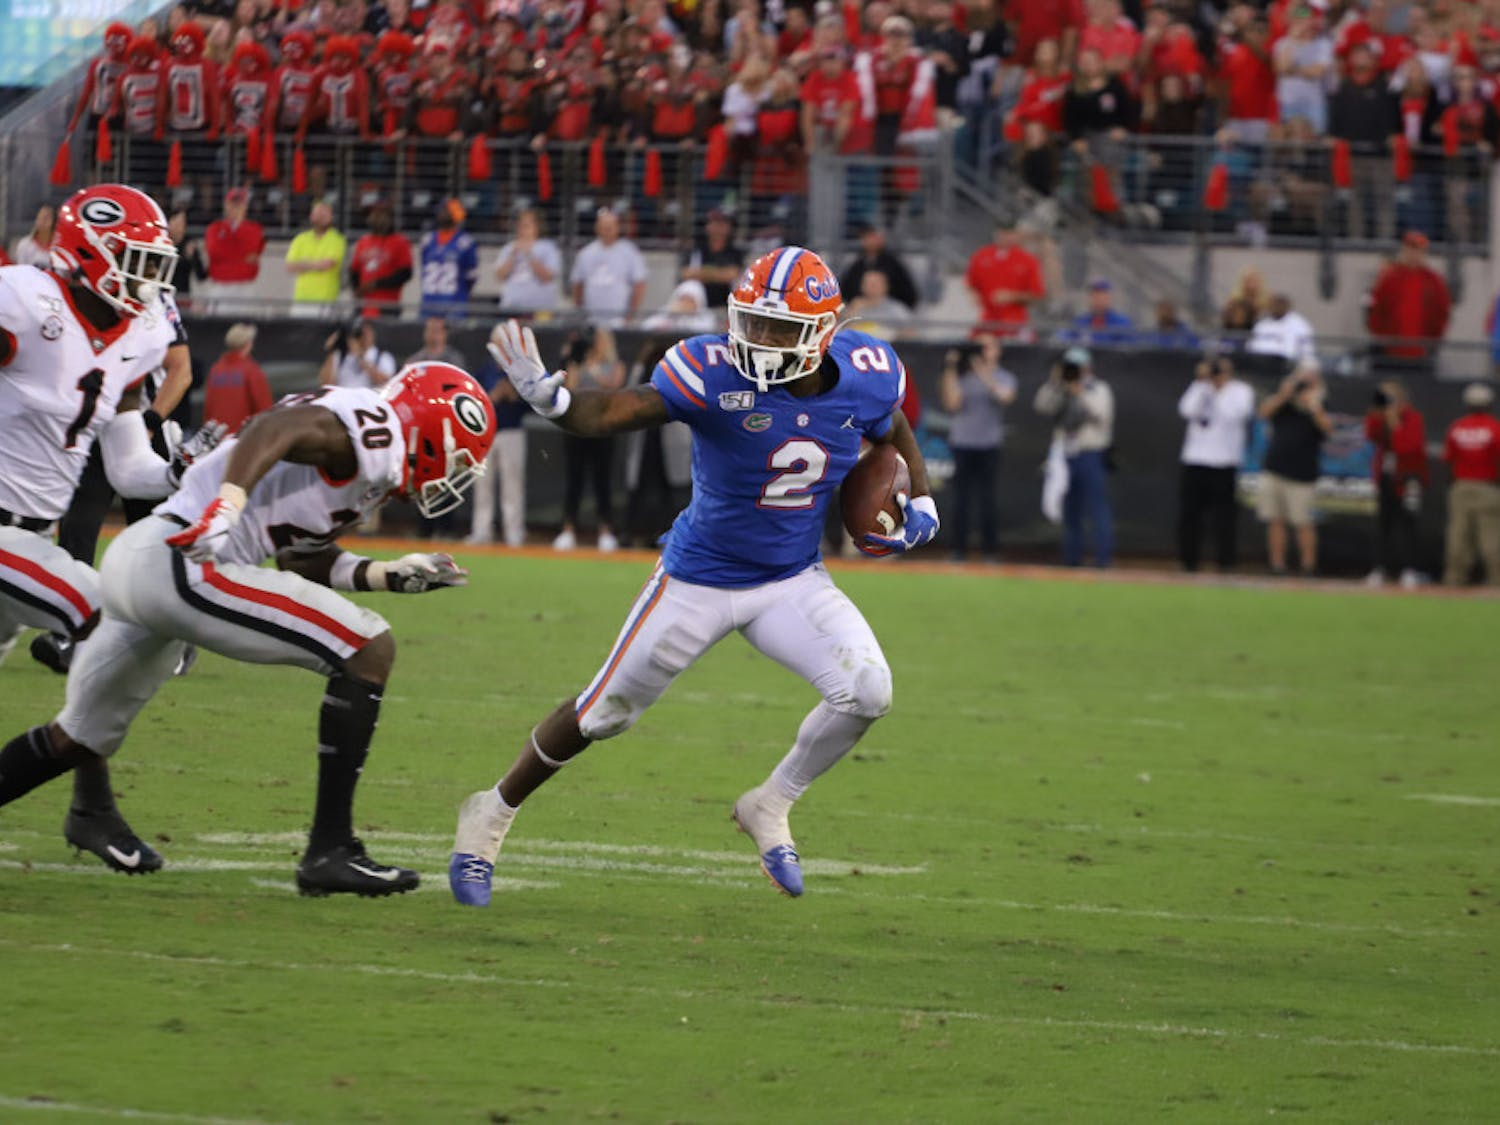 Running back Lamical Perine is one of 22 seniors on Florida's roster that will be playing their final game in the Swamp on Saturday.